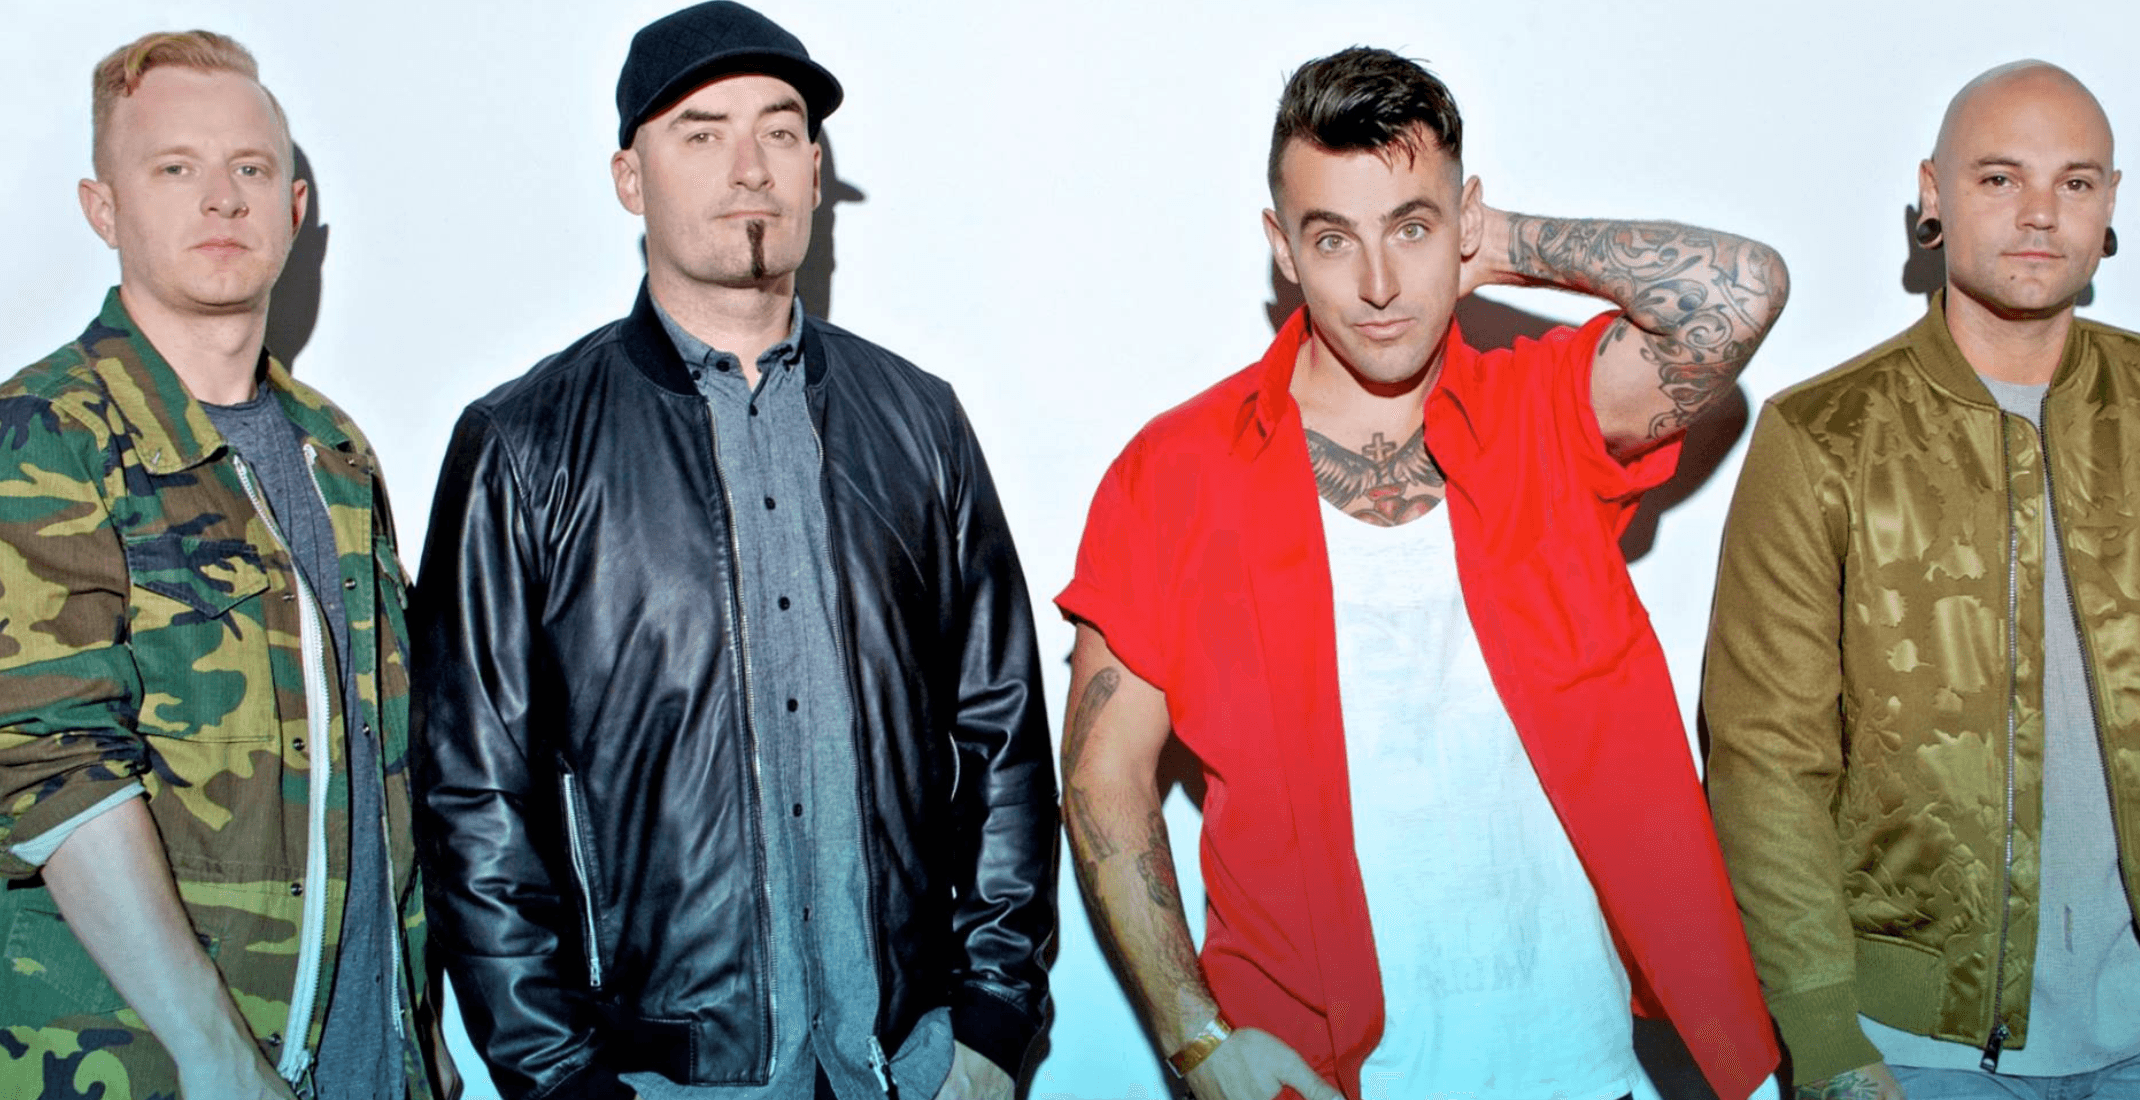 Hedley announces 'indefinite hiatus' following sexual misconduct allegations